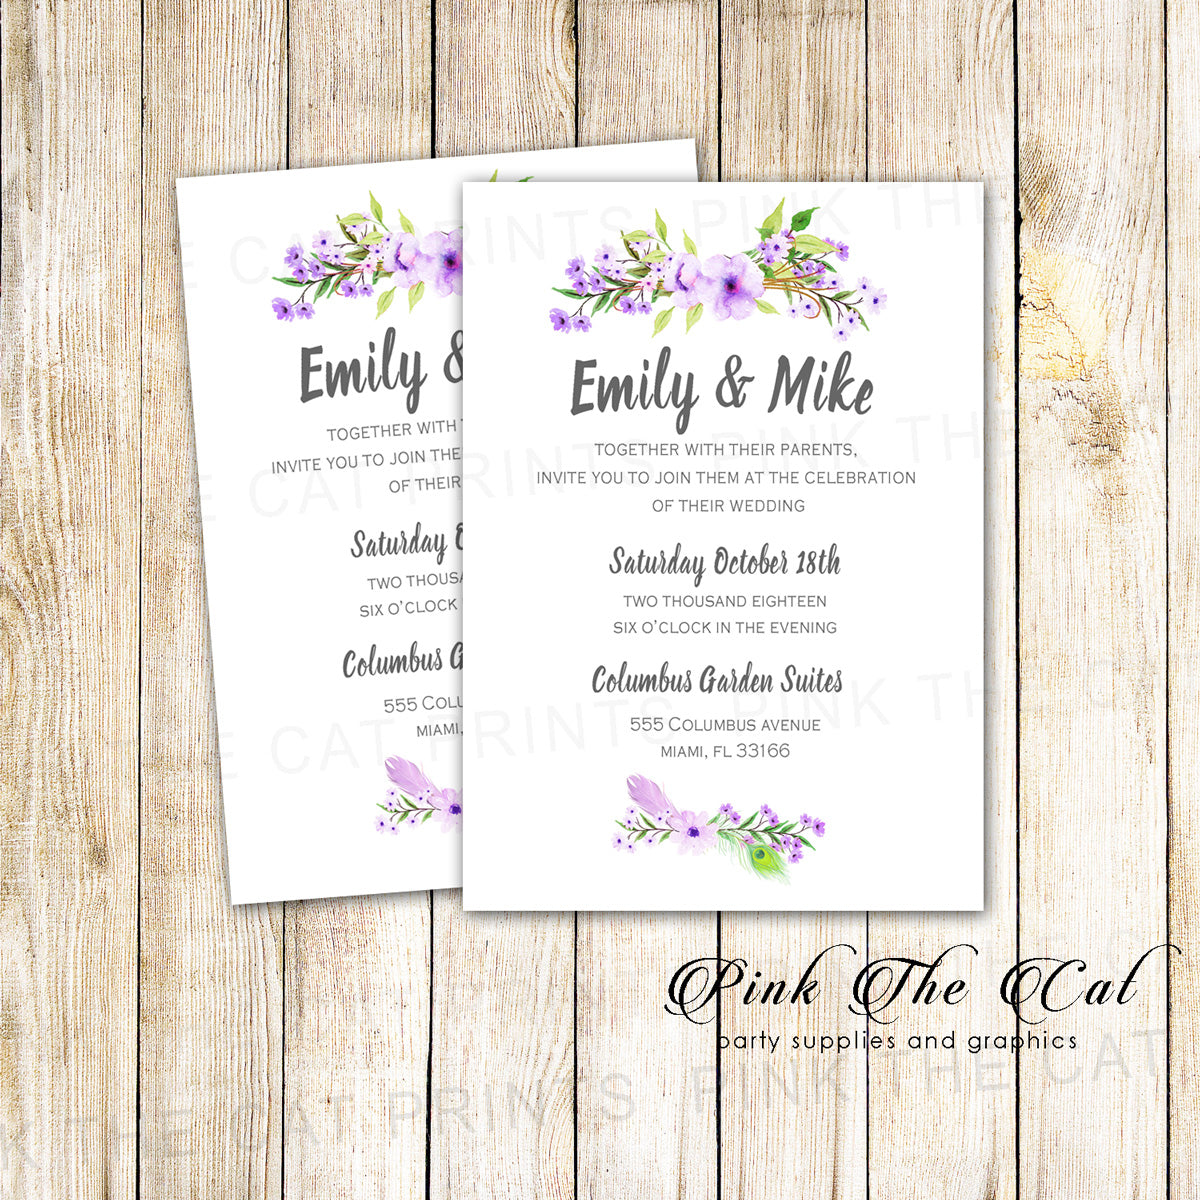 Floral Lavender Romantic Wedding Invitations Printable Personalized – Pink  the Cat